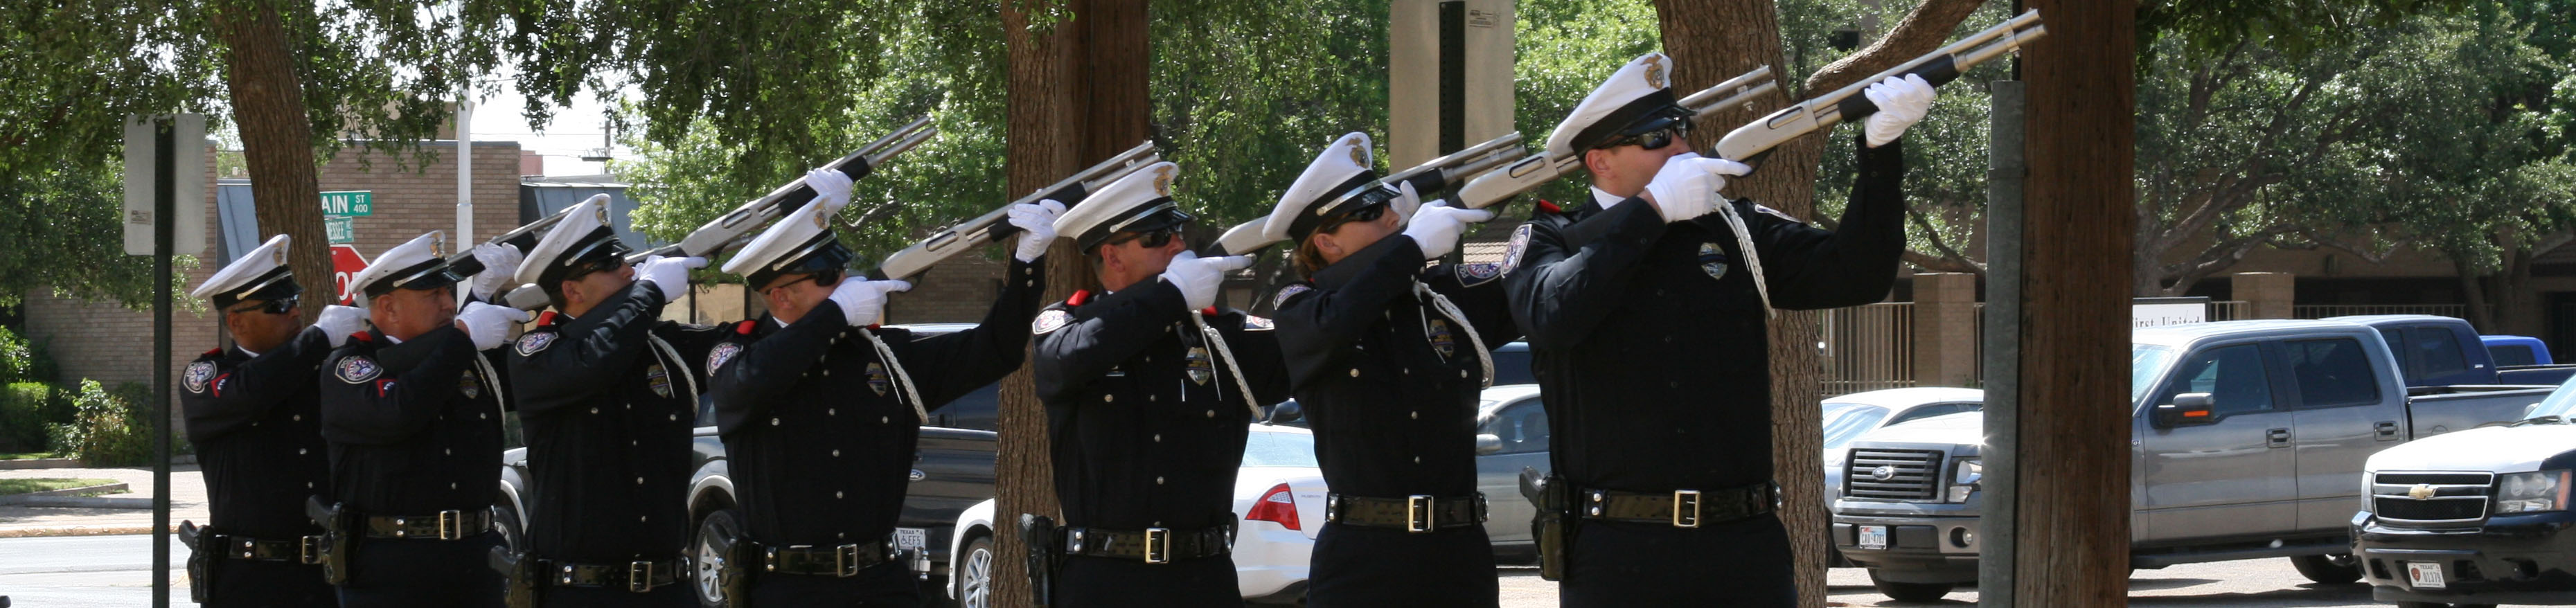 Midland Police Department Memorial Day